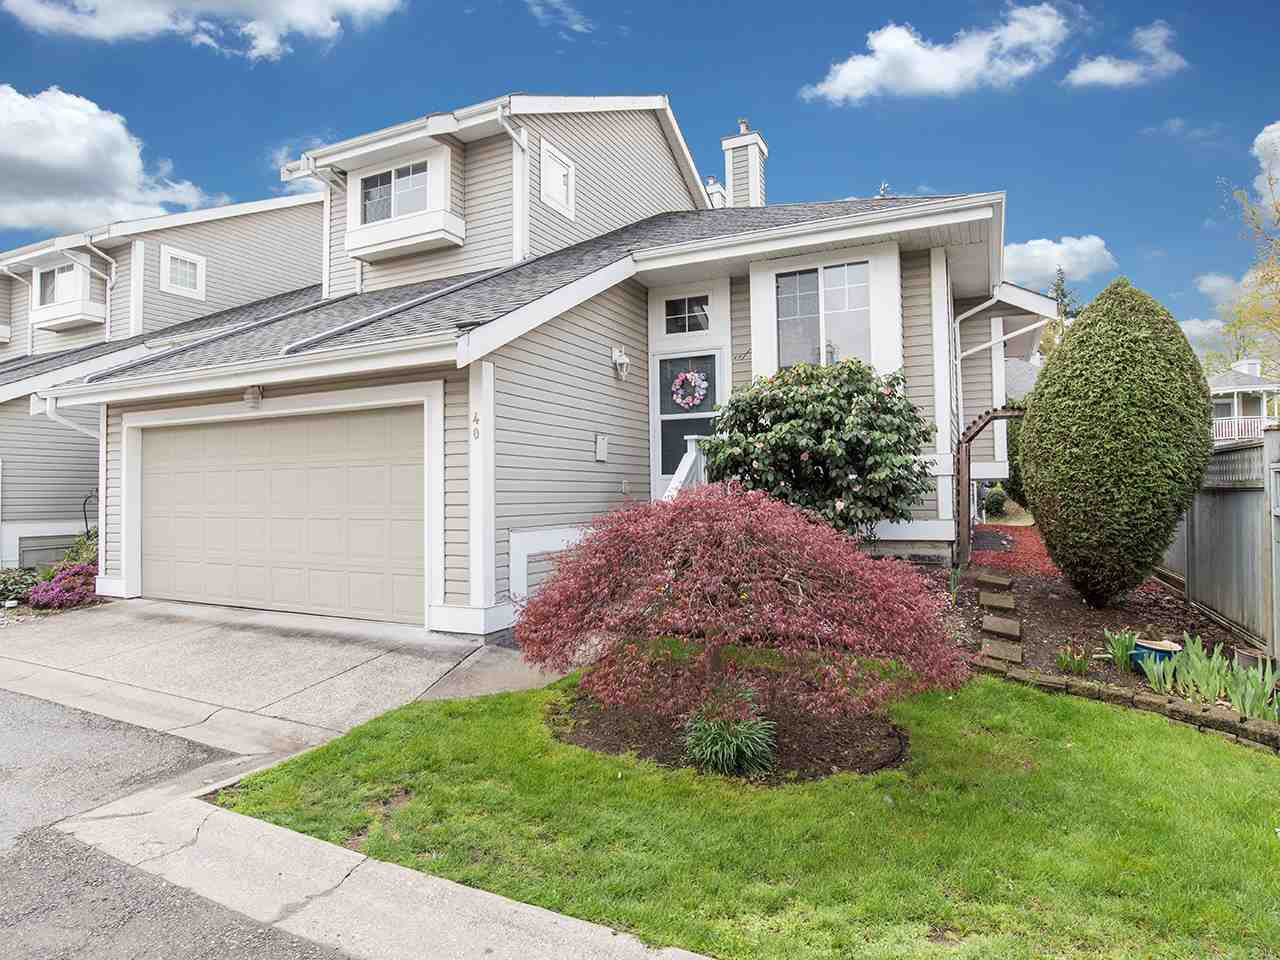 Main Photo: 40 20788 87 Avenue in Langley: Walnut Grove Townhouse for sale : MLS®# R2358146